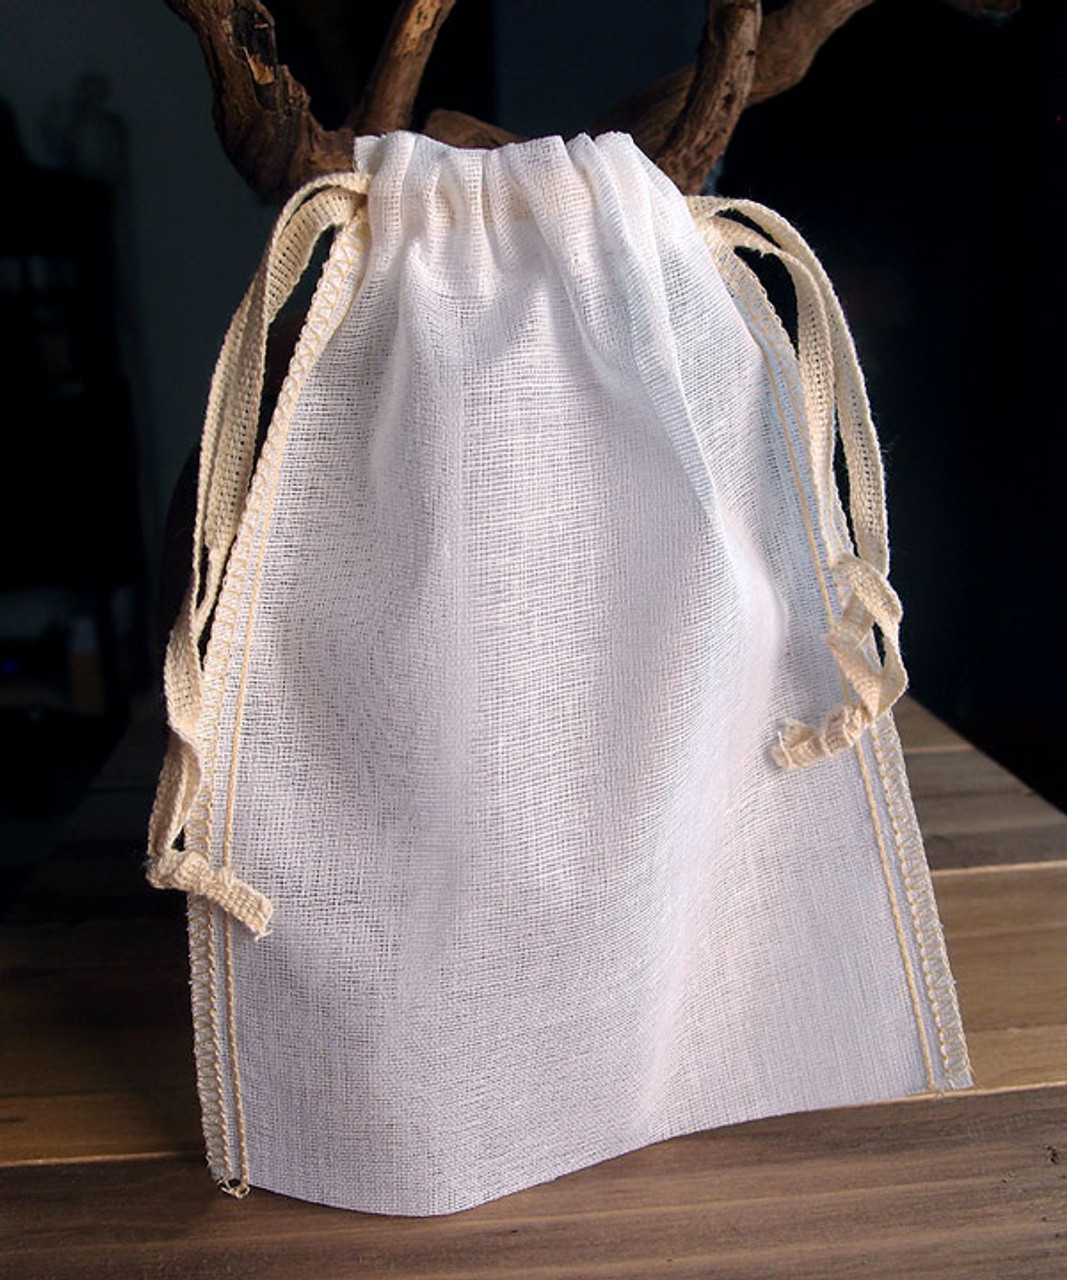 Cotton See-thru Muslin Bags with Ivory Serged Edge (9 sizes)